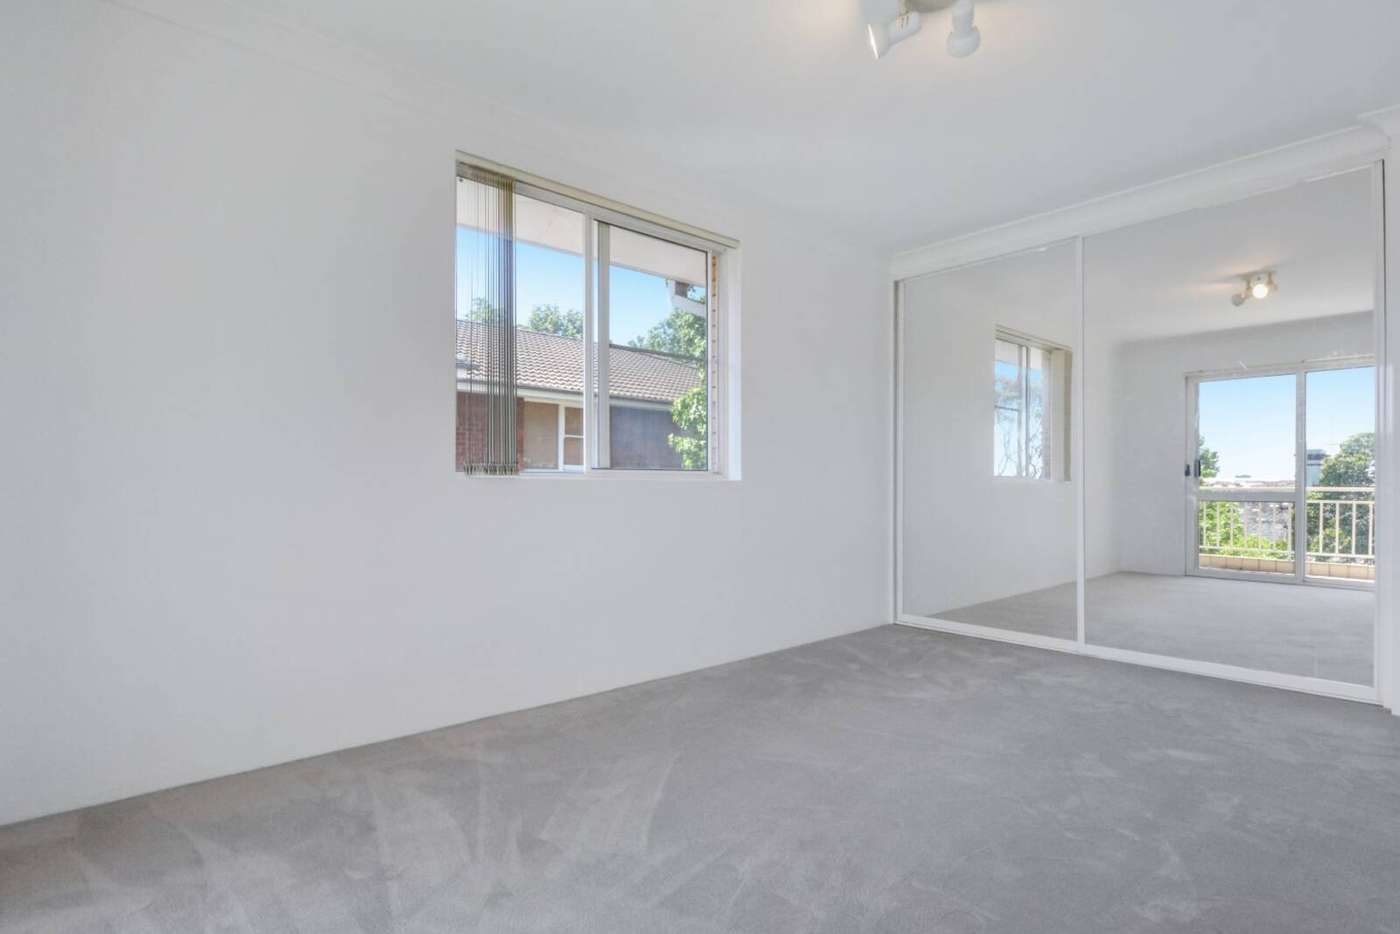 Sixth view of Homely apartment listing, 5/15 Cook Street, Randwick NSW 2031